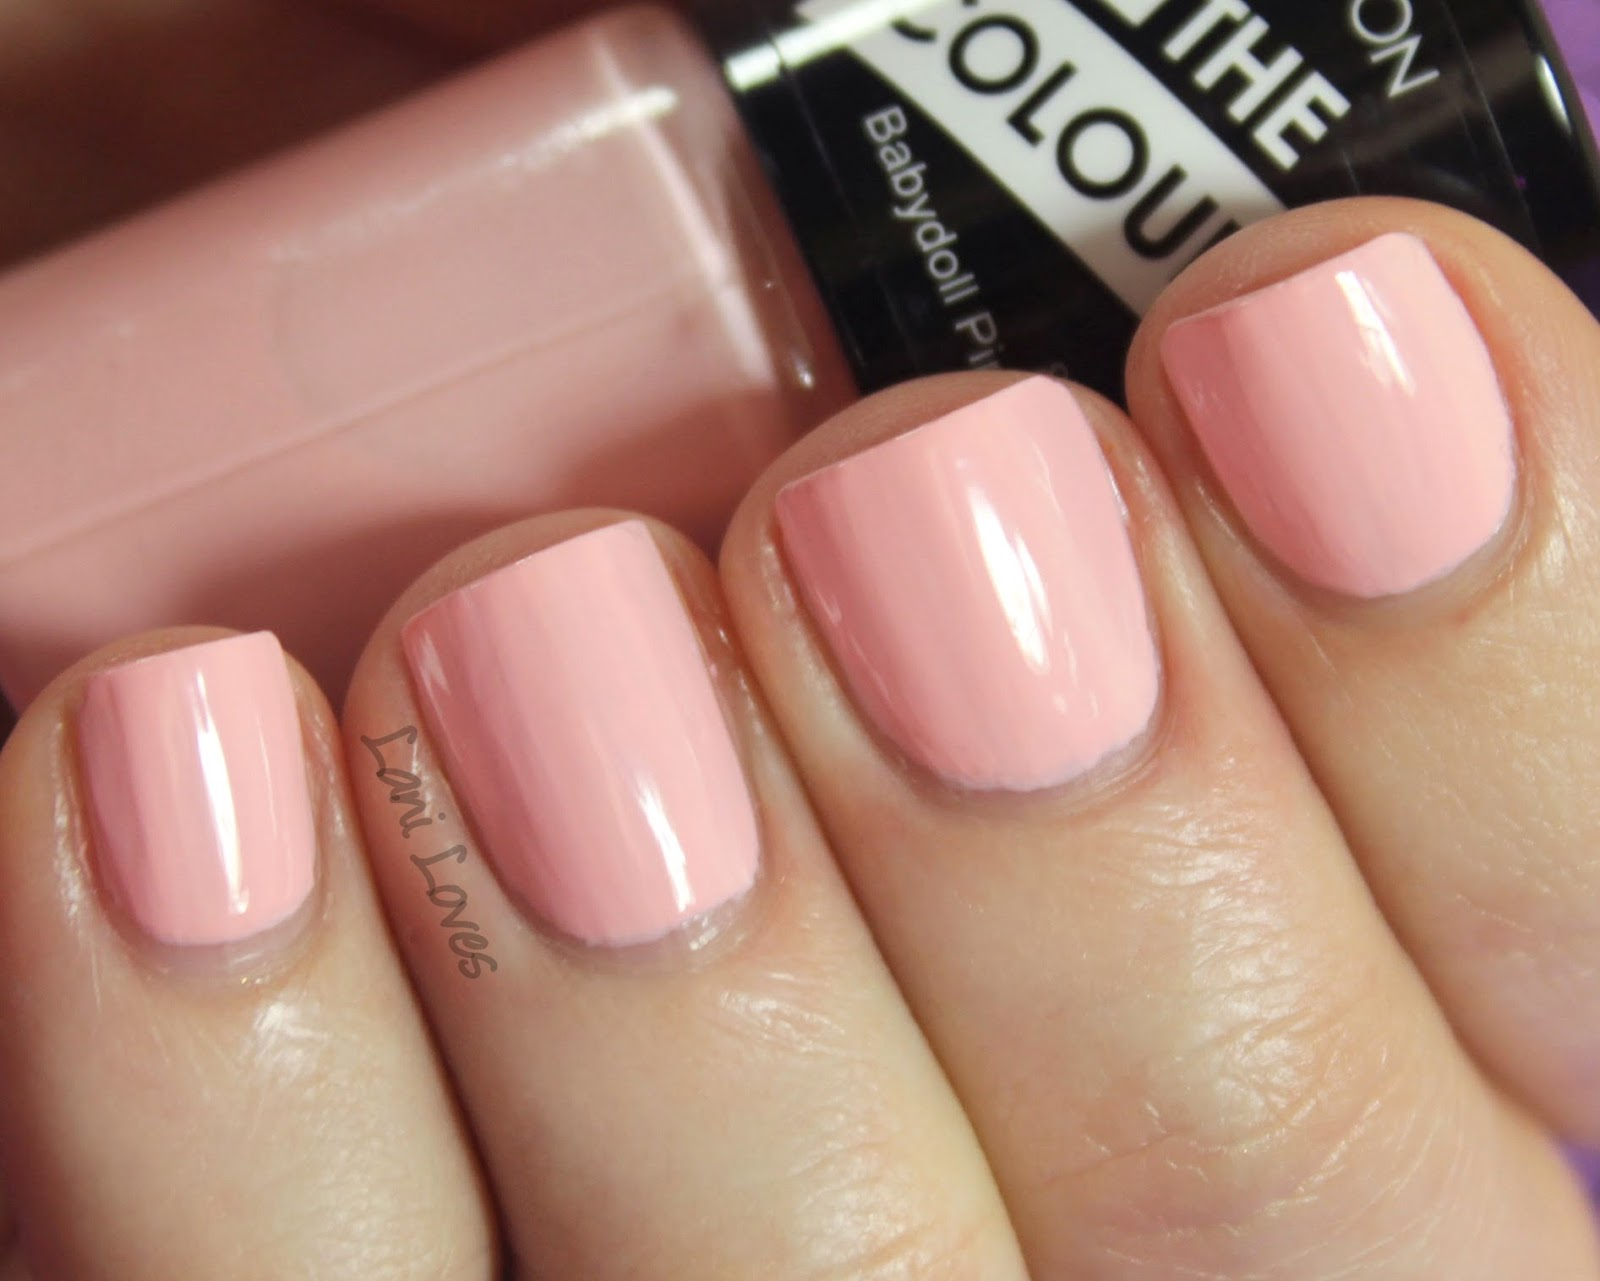 for treatment new favorite layers breathable orly of this did pale thin is called rosy beautiful nail the extremely two one snail color polish feather light need i shades as pink a my